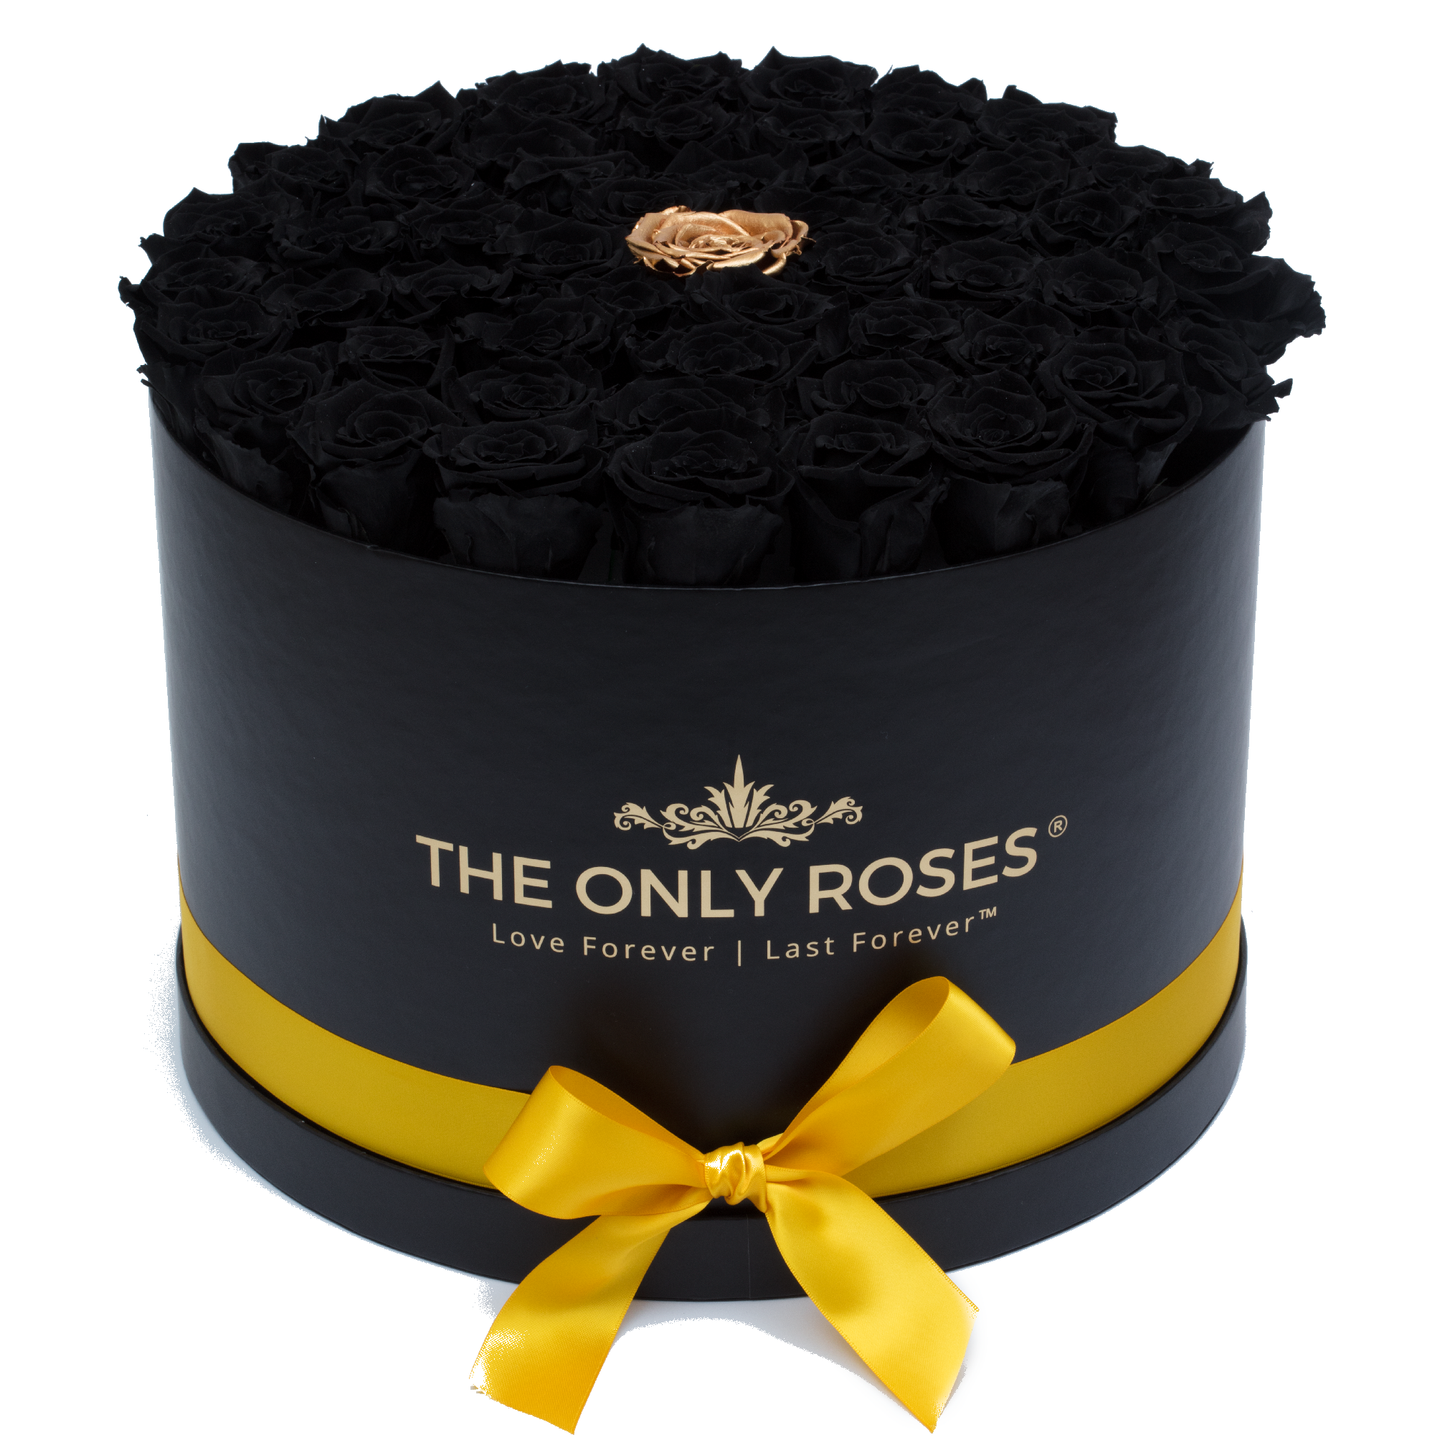 Black & Gold Preserved Roses | Large Round Black Huggy Rose Box - The Only Roses